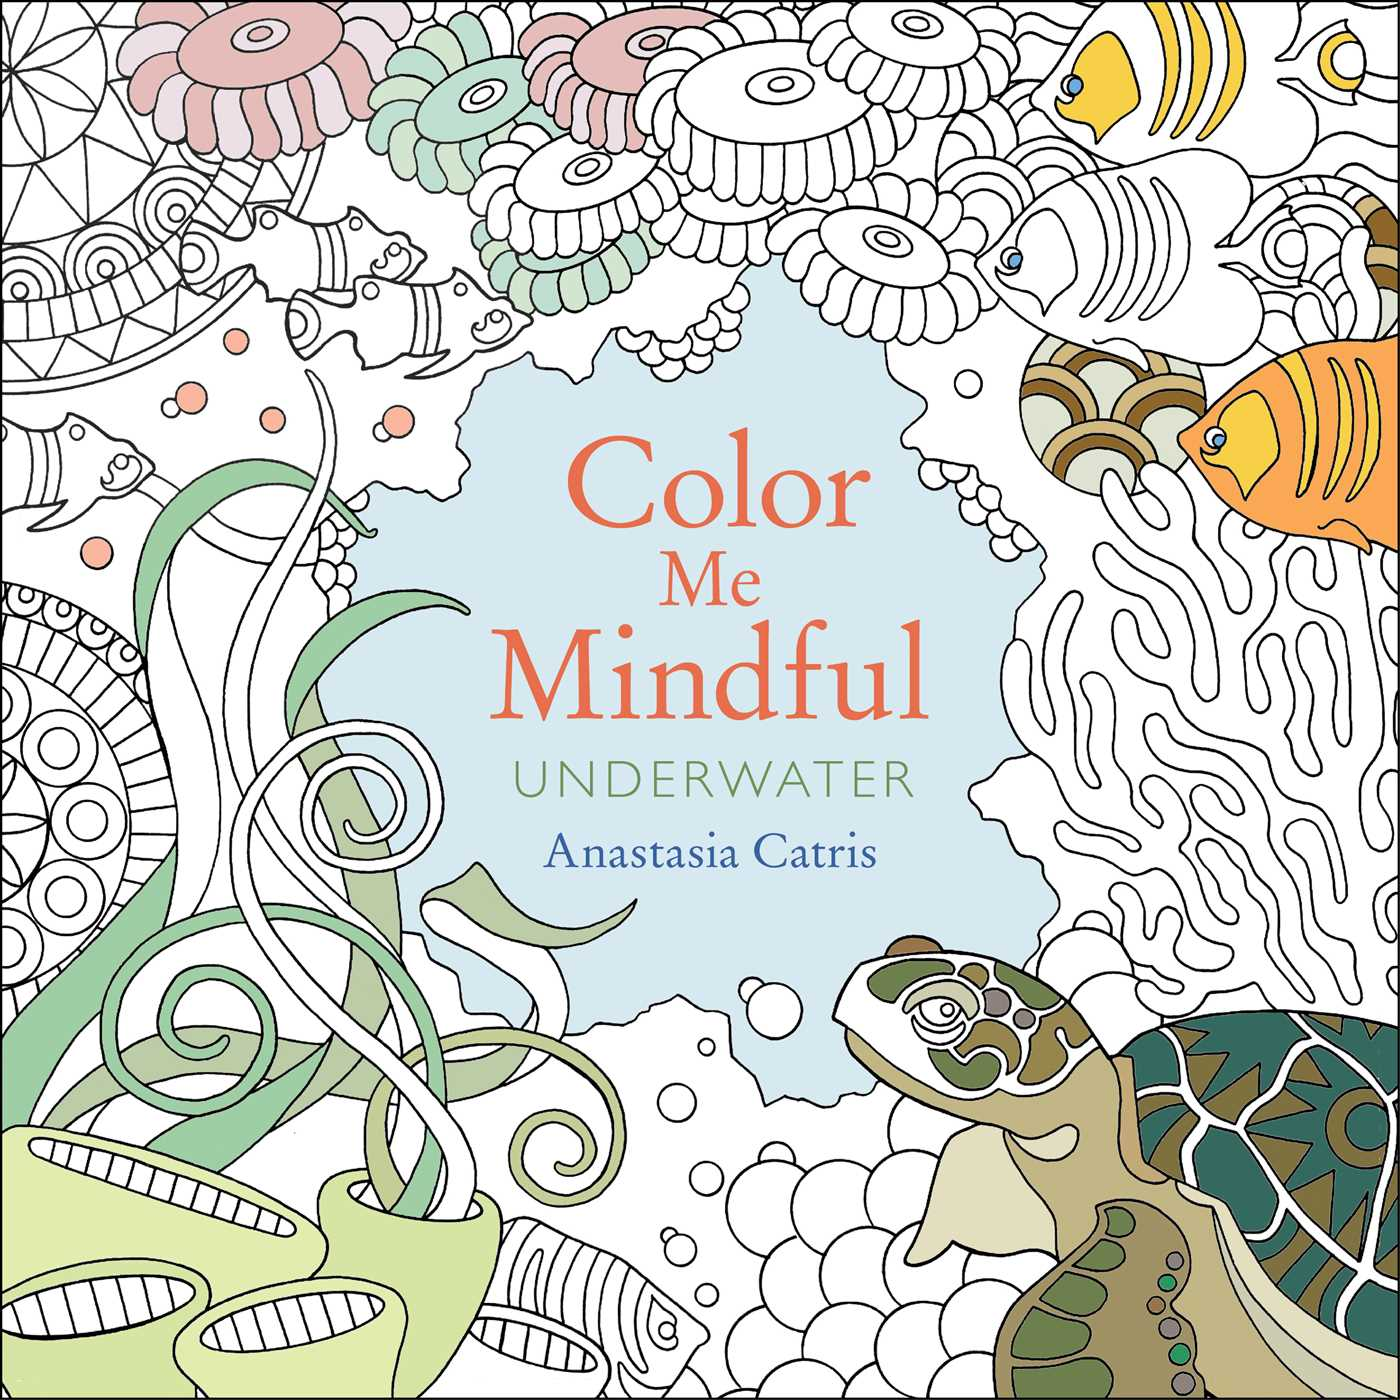 Color me mindful underwater 9781501130878 hr